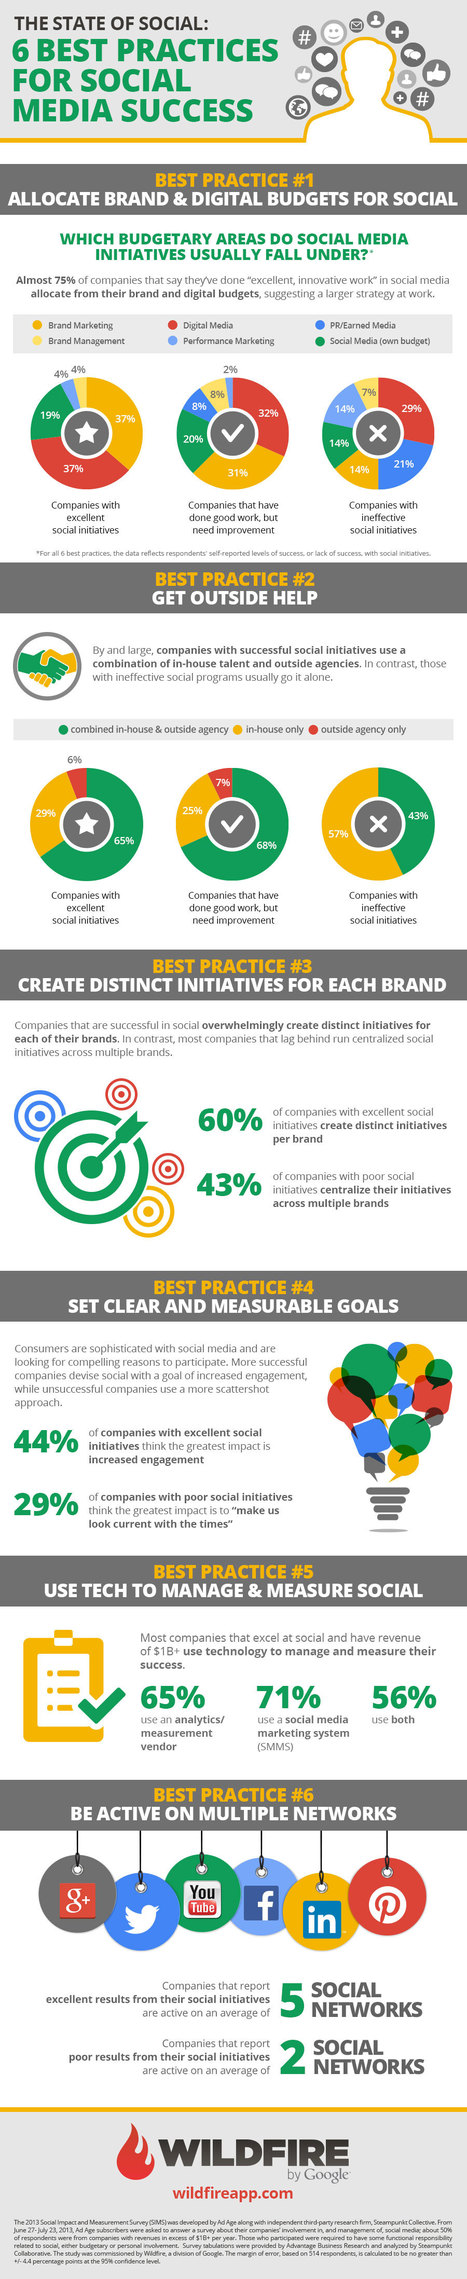 The State of Social: An Infographic of 6 Best Practices | Social Media | Scoop.it